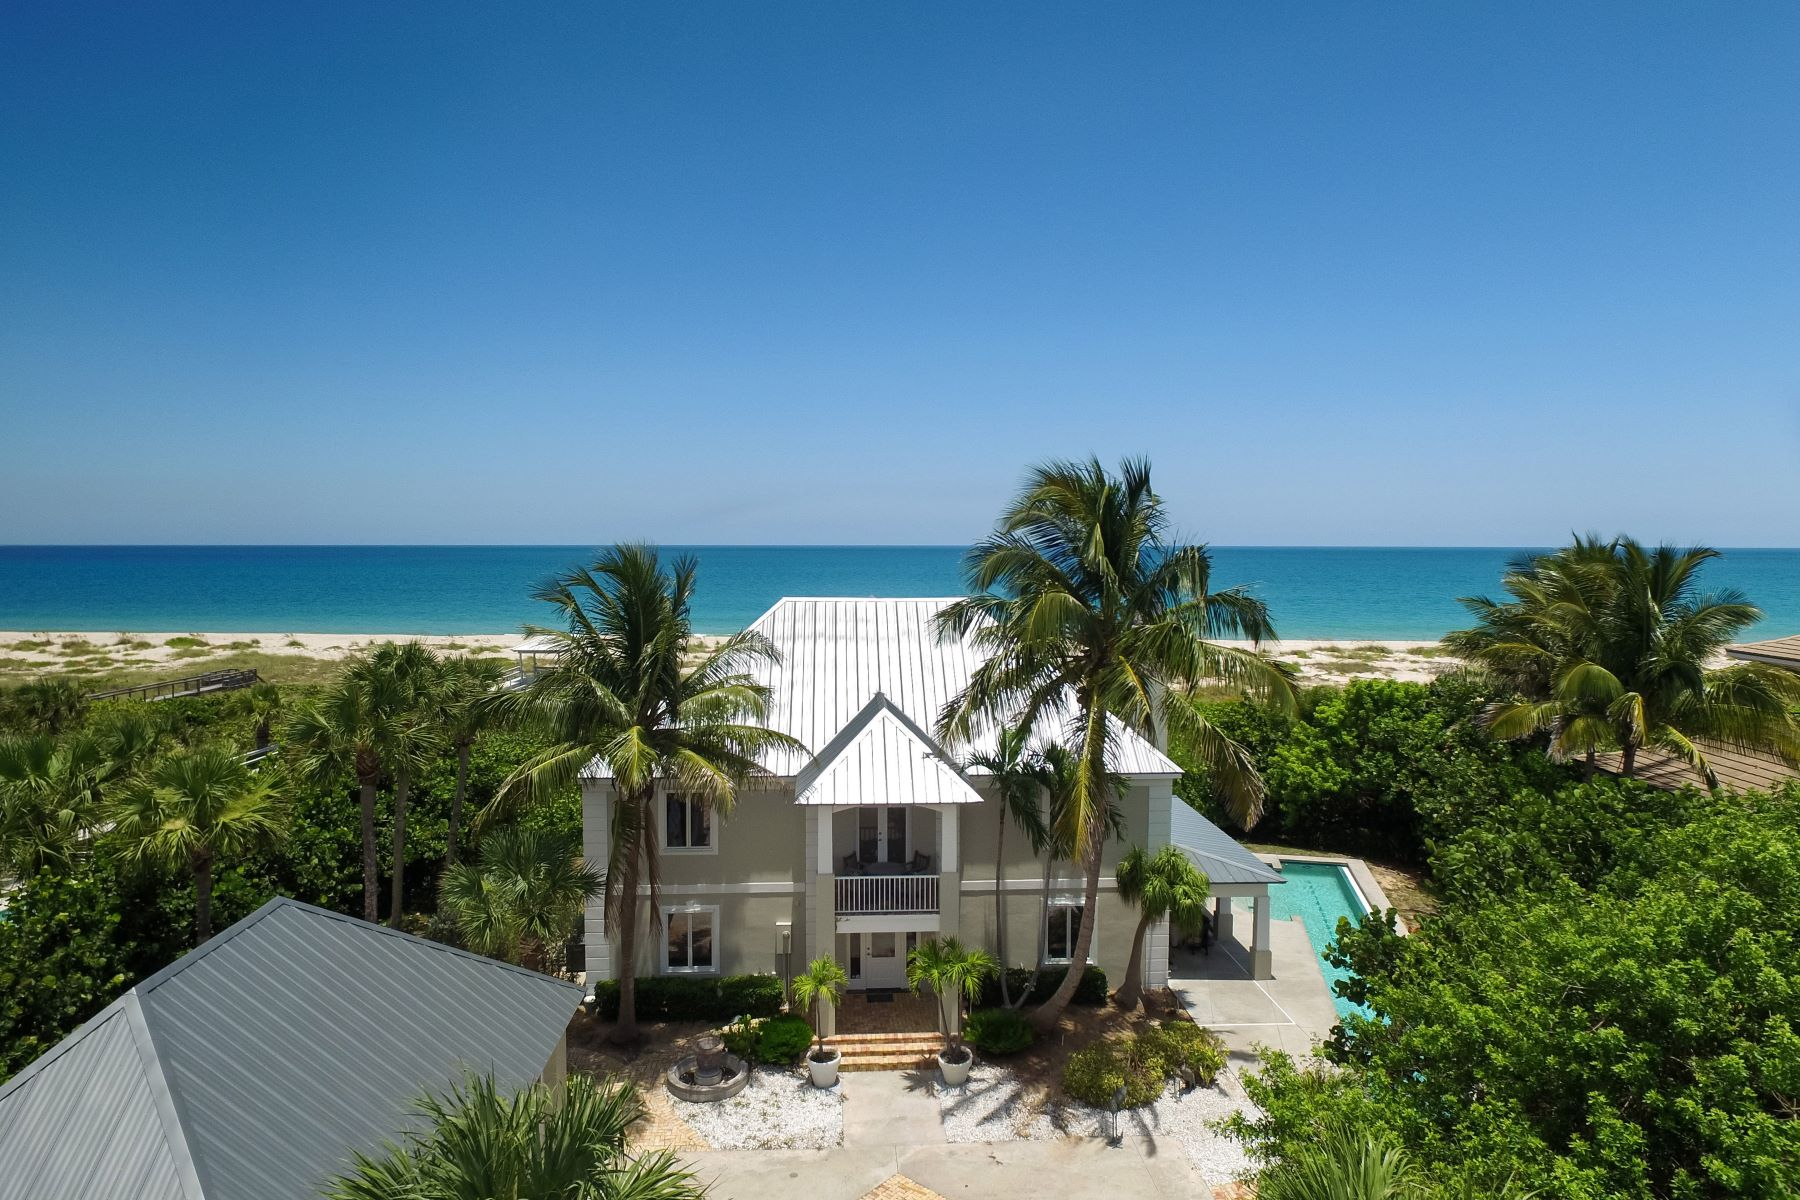 Casa Unifamiliar por un Venta en Oceanfront Estate Home 820 Crescent Beach Road, Vero Beach, Florida, 32963 Estados Unidos